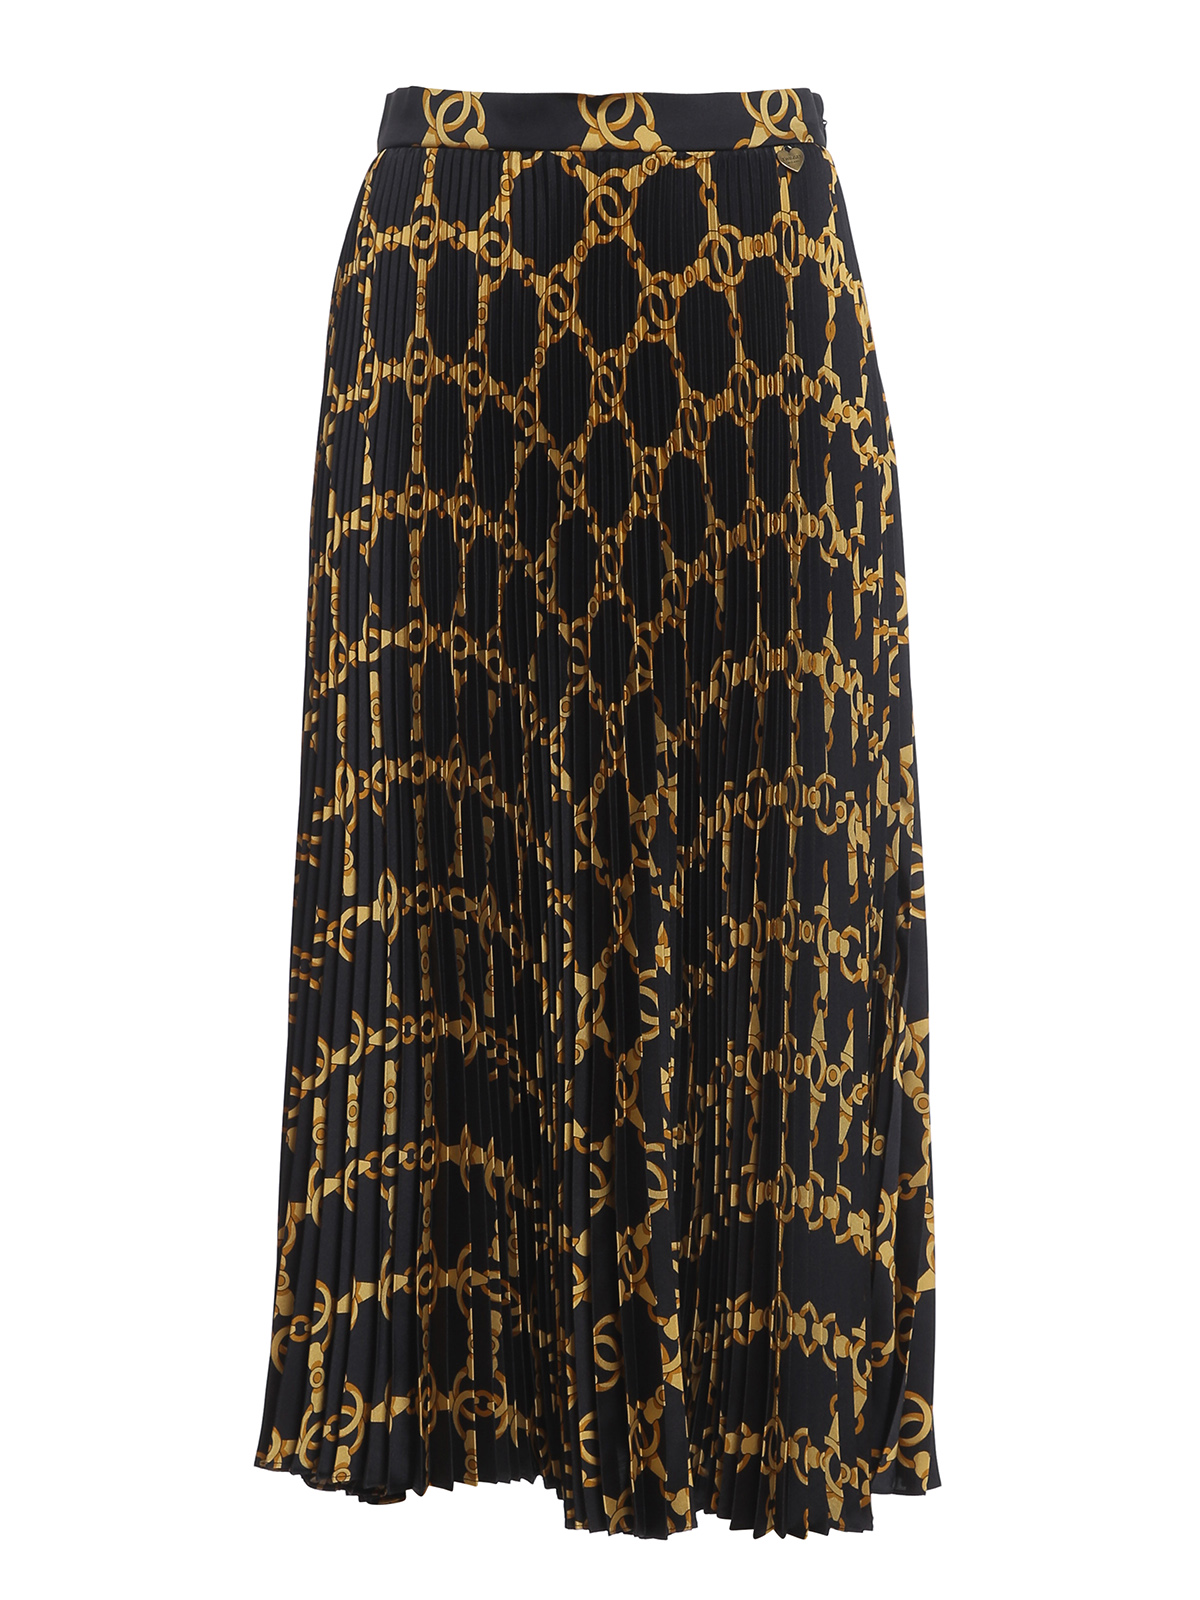 Twinset PLEATED GOLD CHAIN PRINT SKIRT